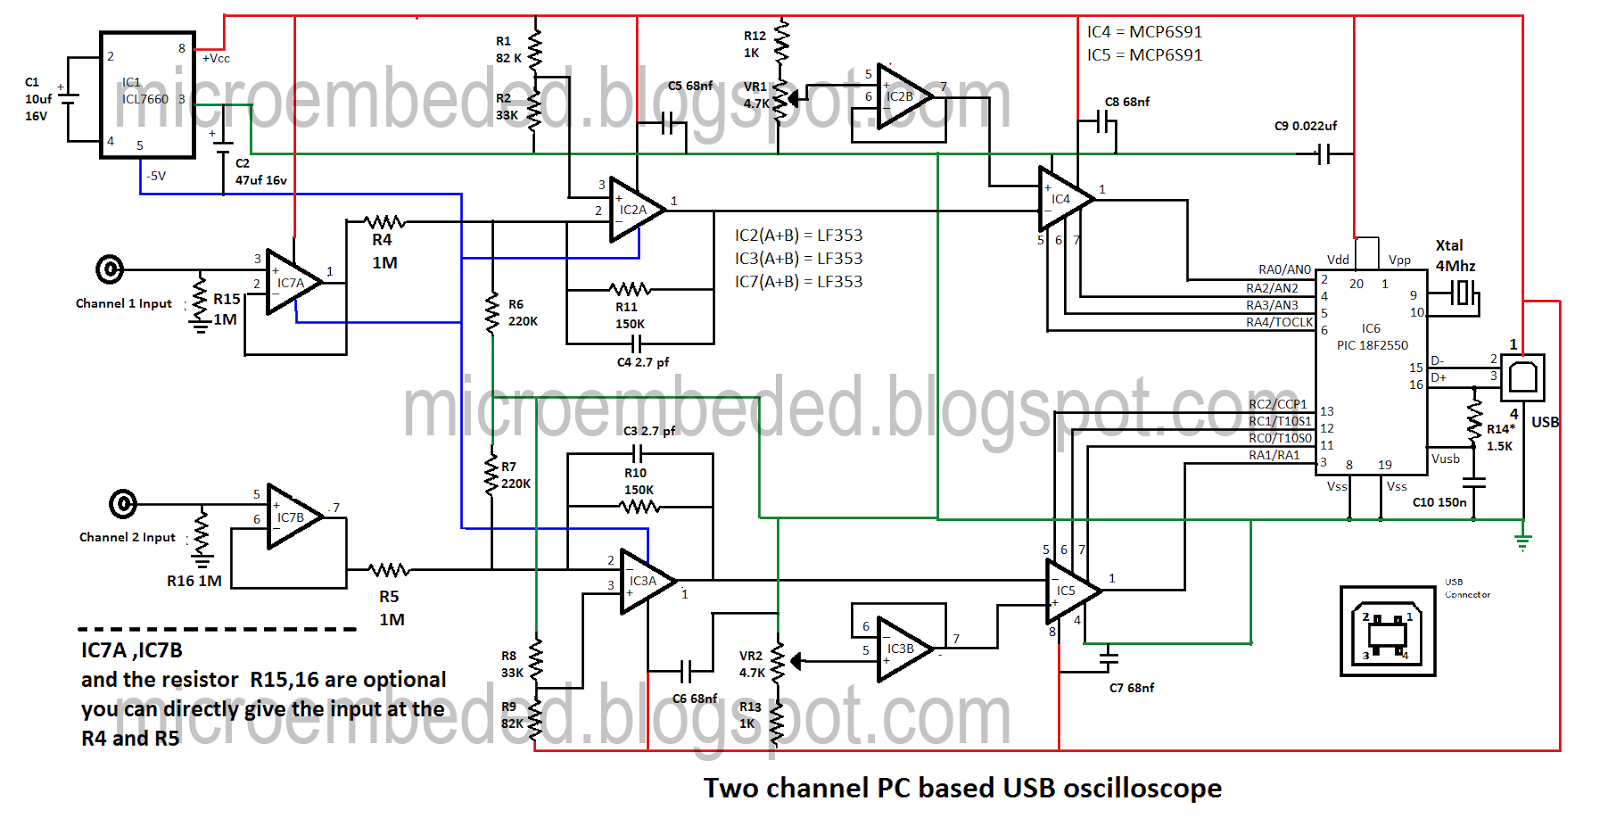 medium resolution of embedded engineering two channel pc based oscilloscope usbusb oscilloscope schematic 6